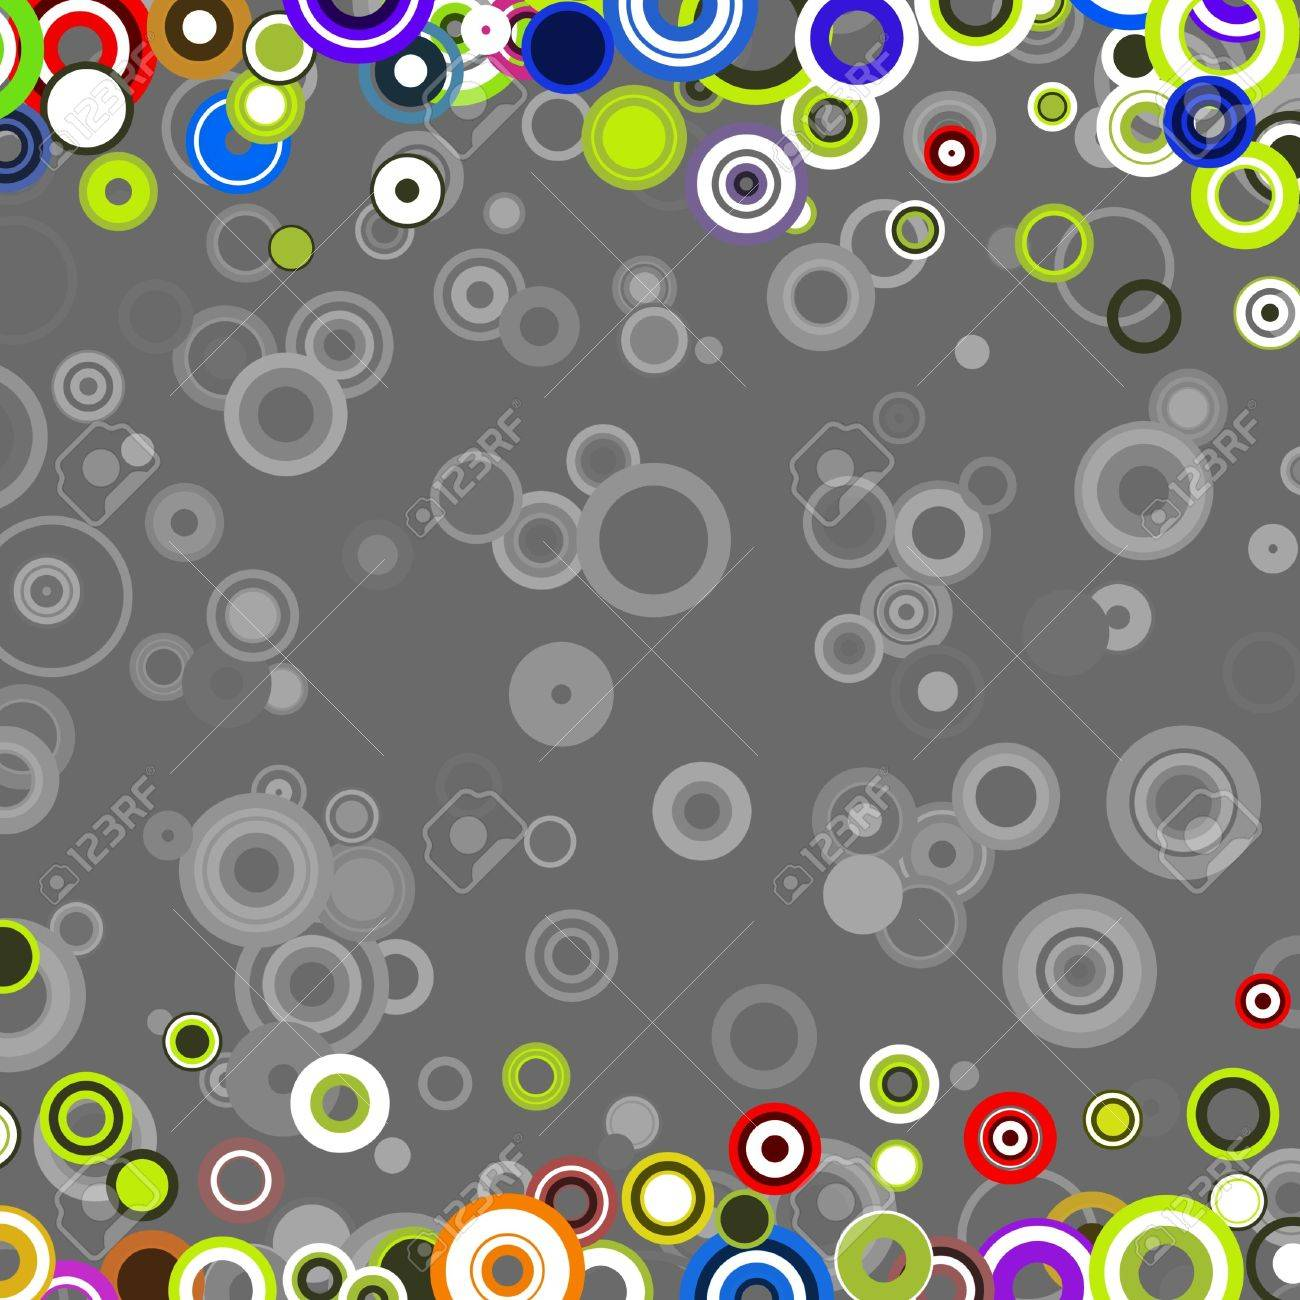 Illustrated retro abstract background made from circles Stock Photo - 2459639